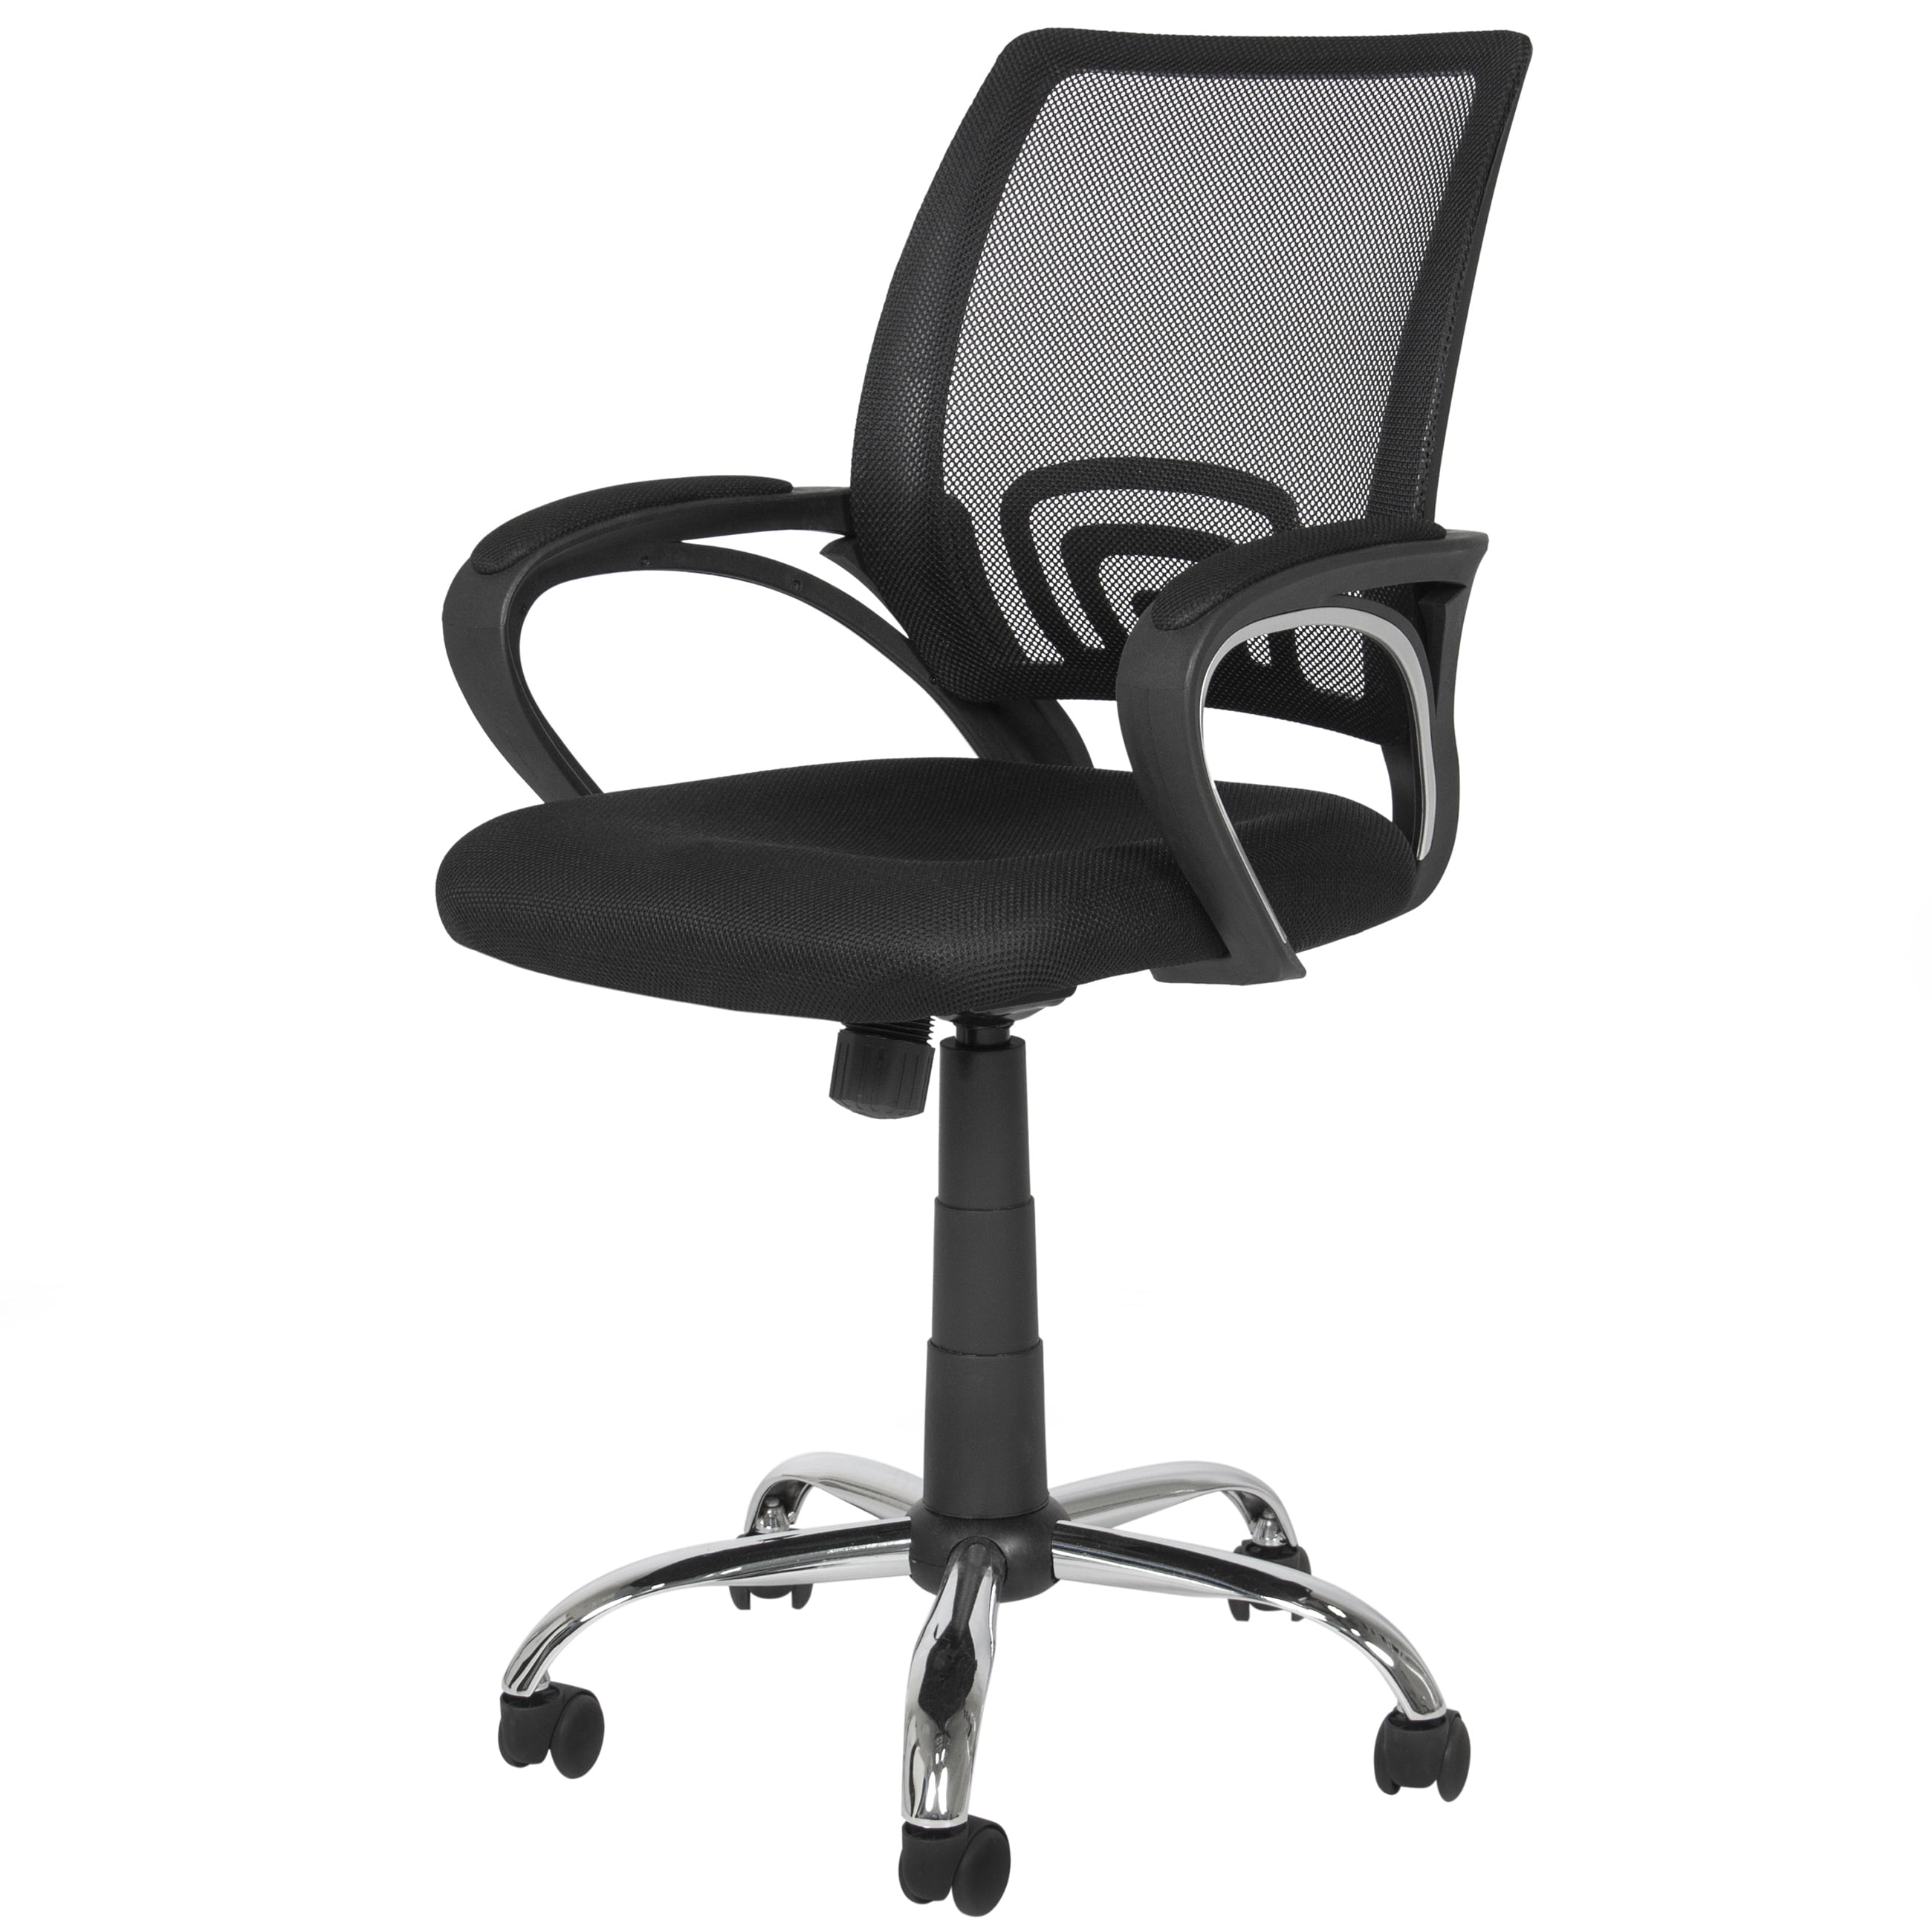 Uncategorized office desk chair casters - Best Choice Products Ergonomic Mesh Computer Office Desk Task Midback Task Chair W Metal Base New Walmart Com